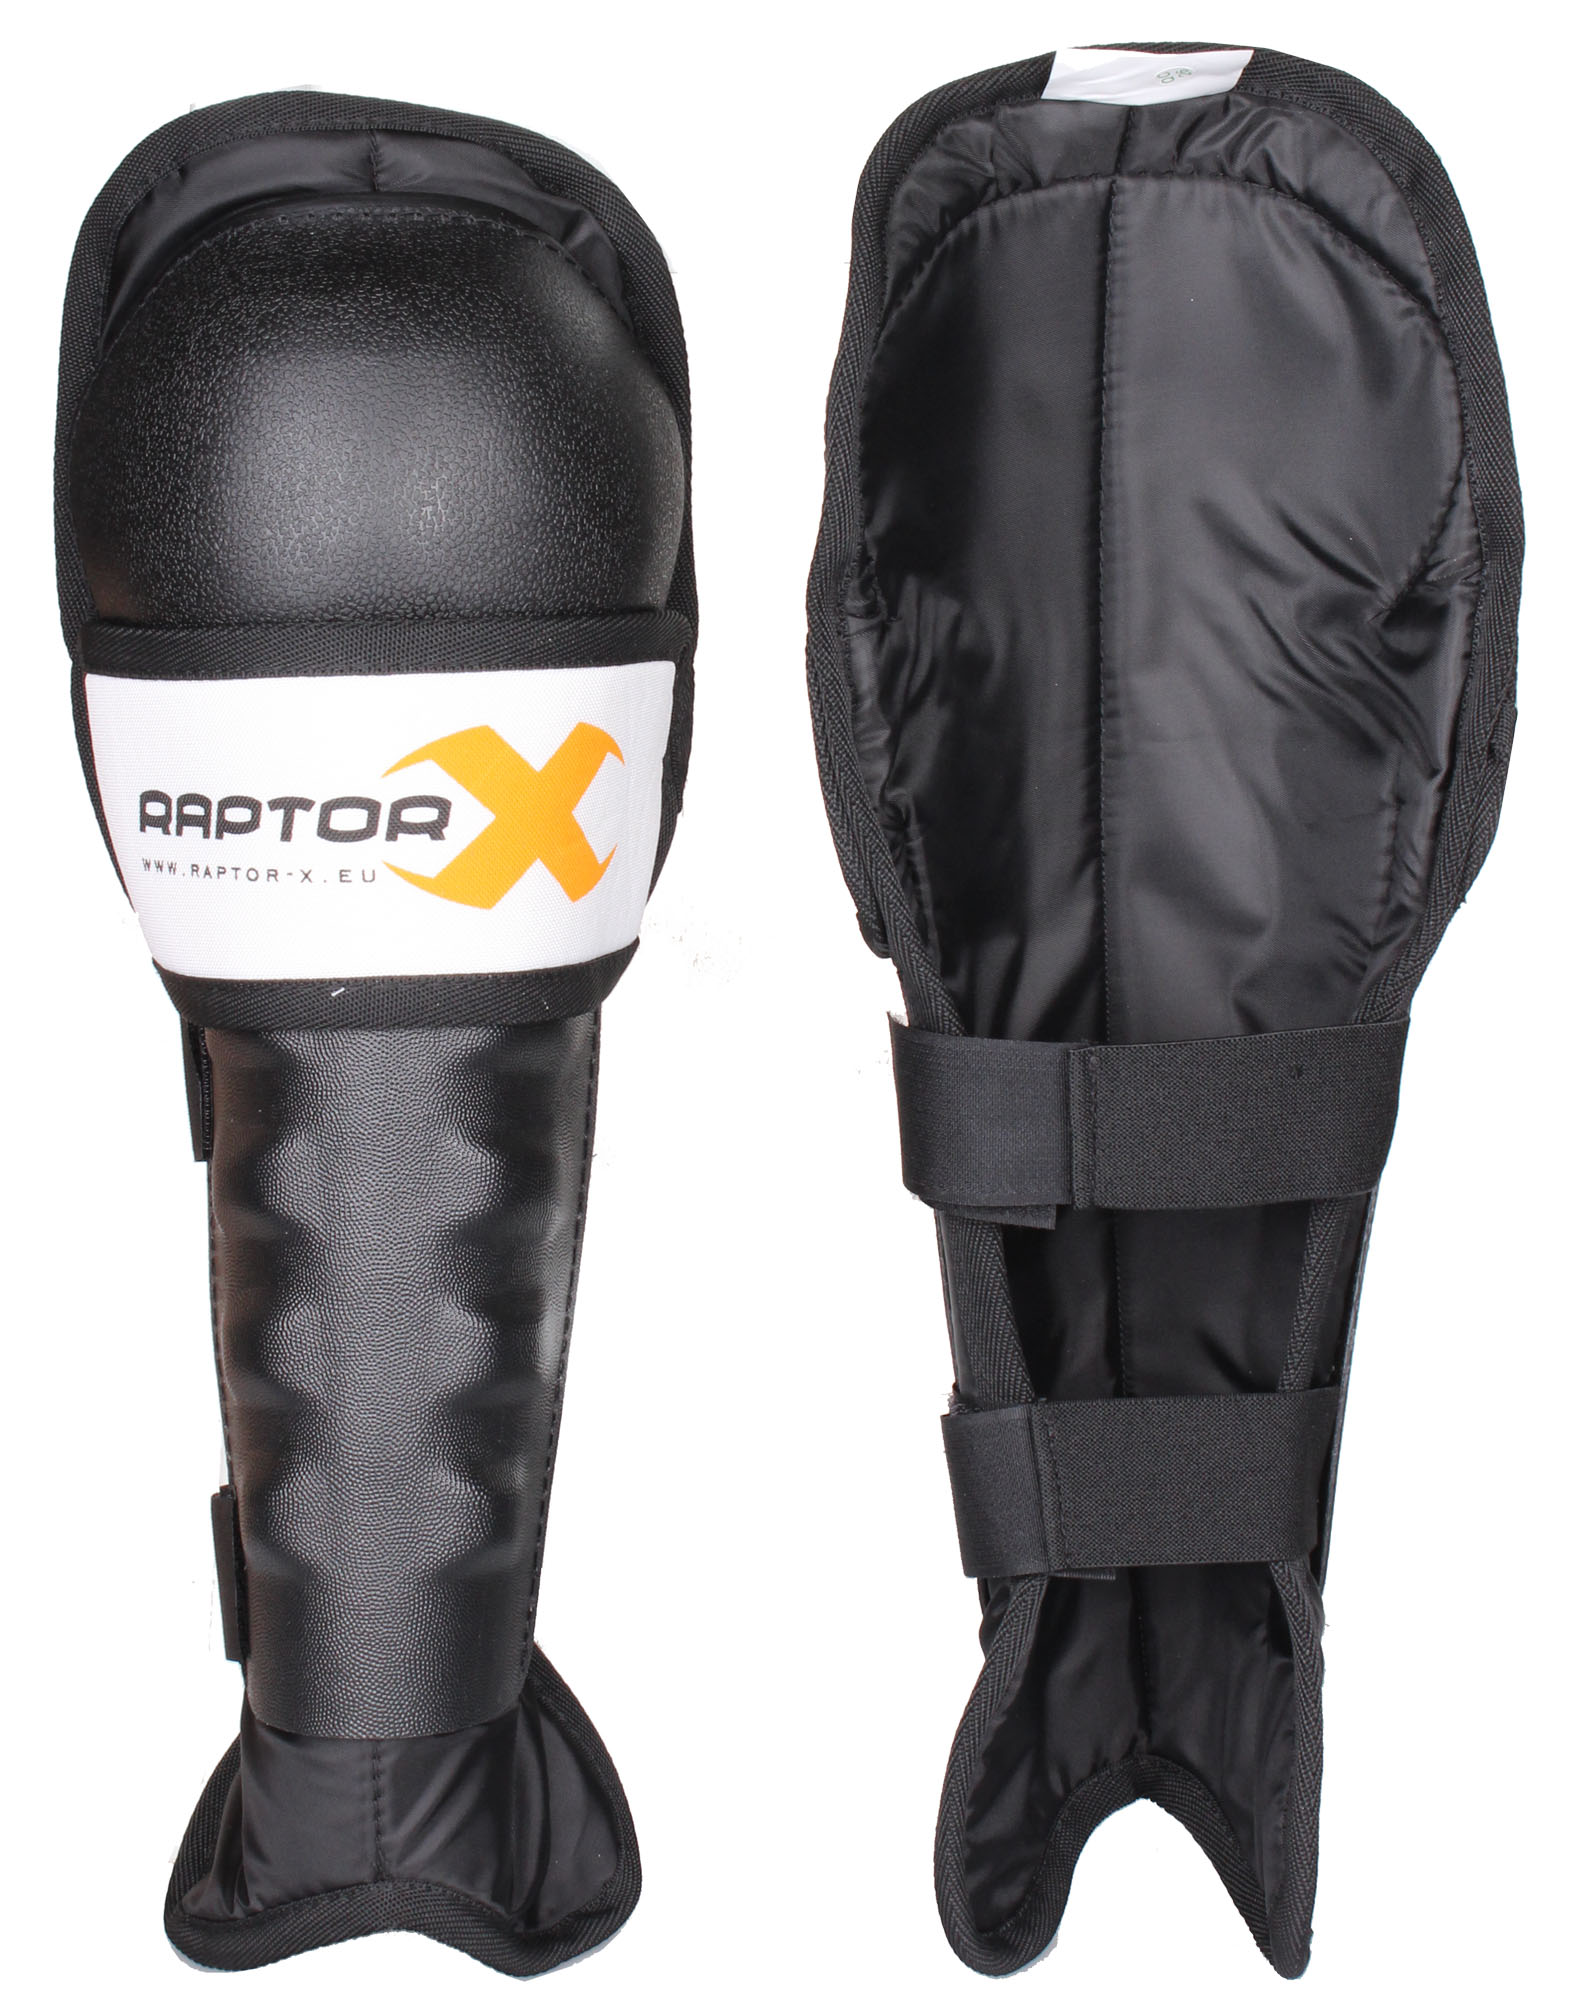 RAPTORr-X Street Hockey Shin guards hokejbalové holeně